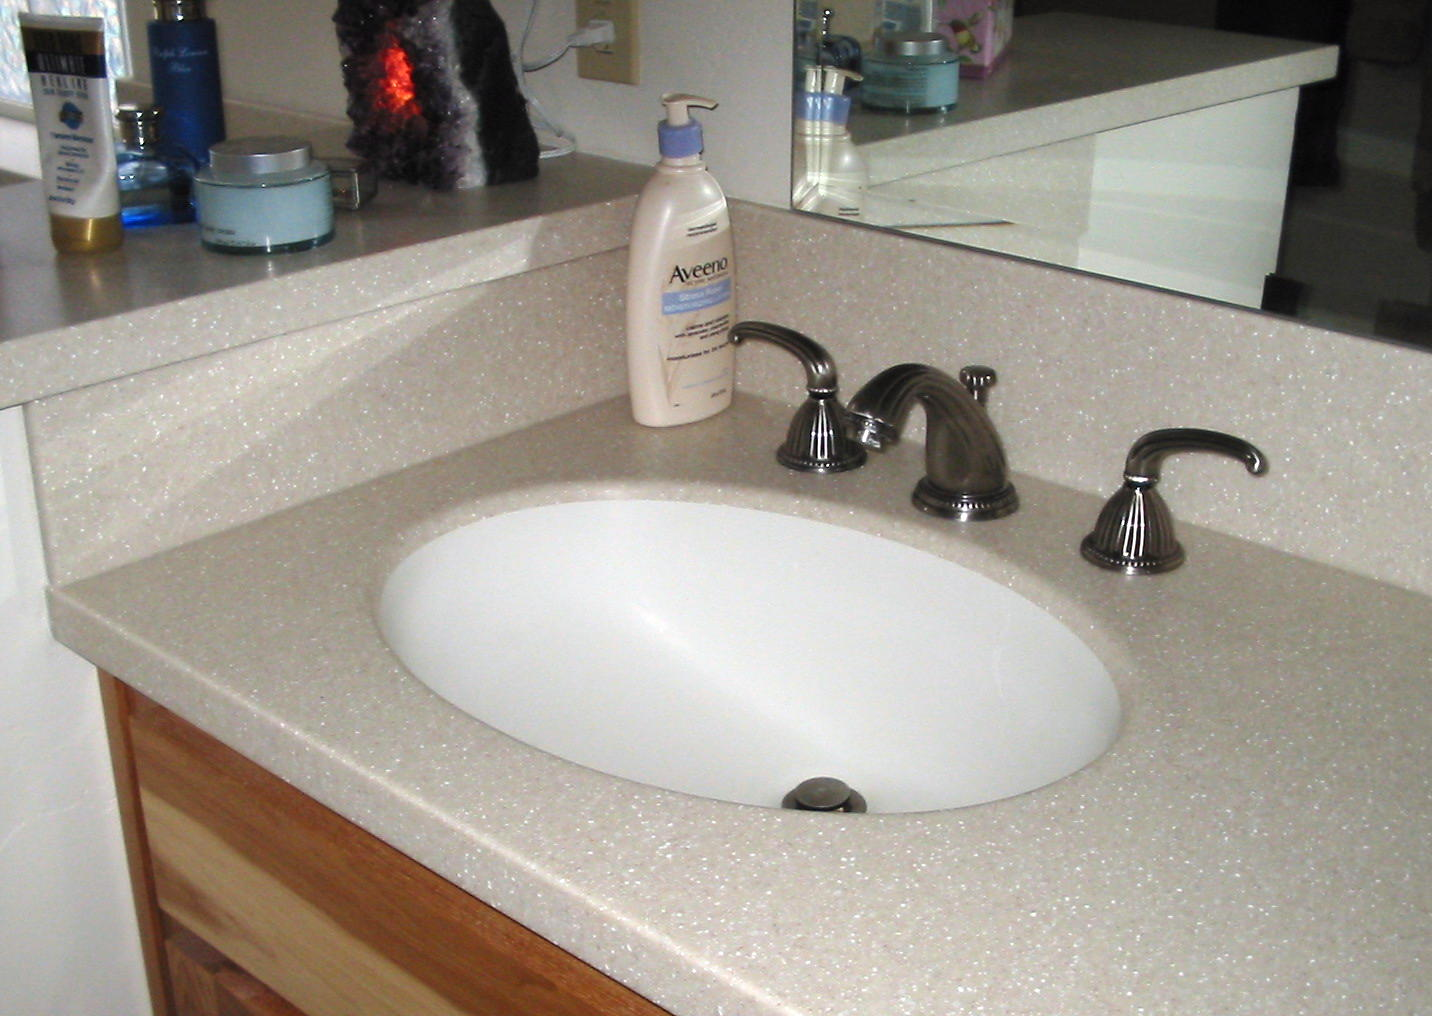 Acrylic Bathroom Sink Acrylic Bathroom Sink Measures 900 X 470mm D S Custom Countertops Photo Gallery Acrylic